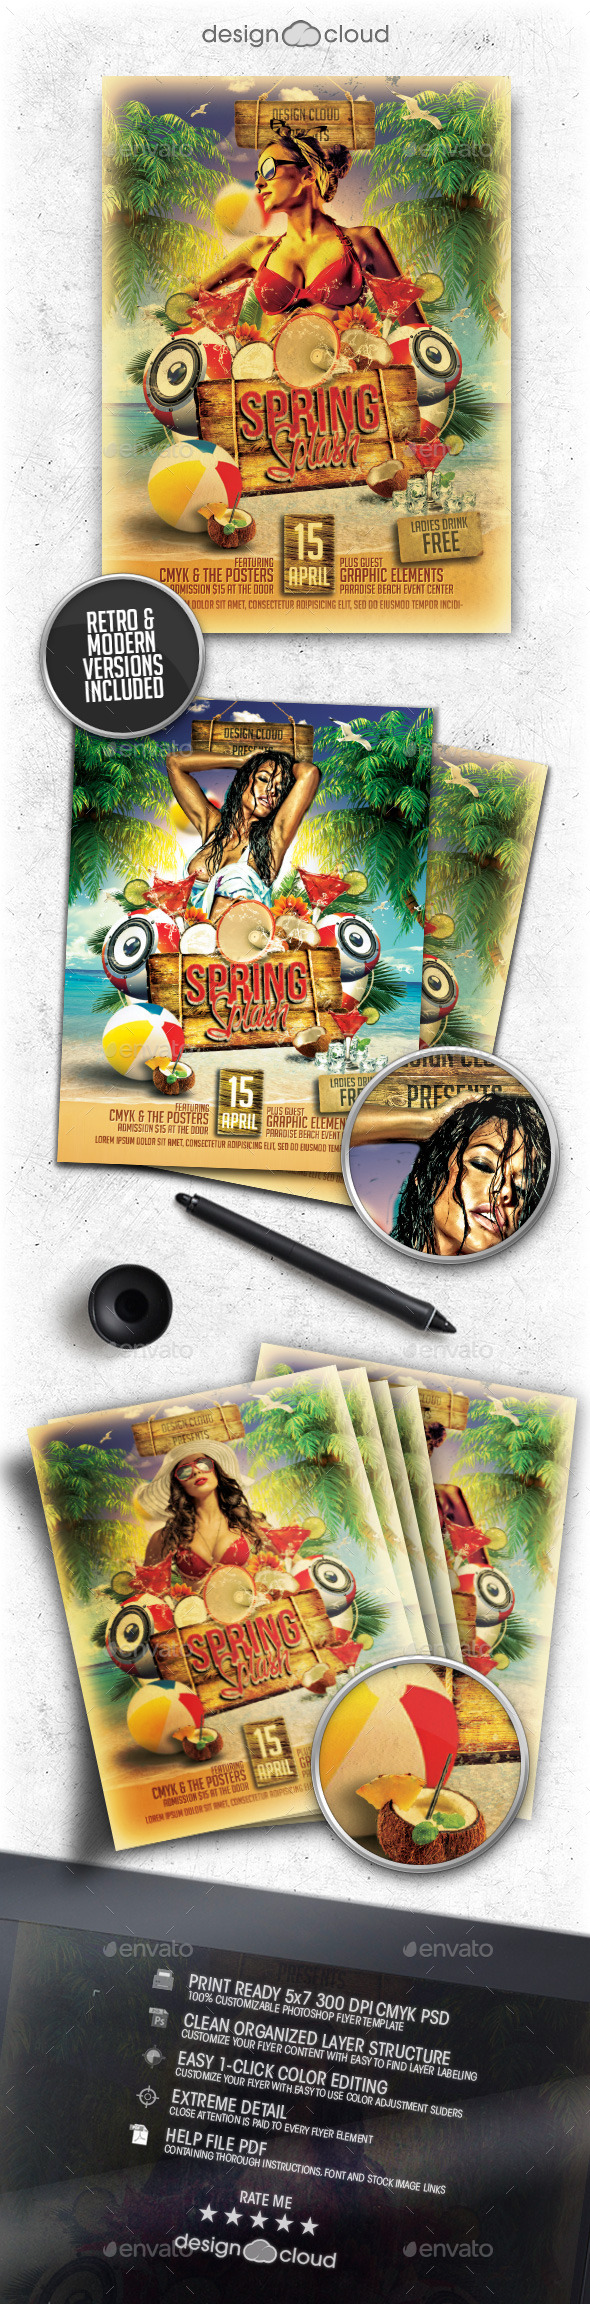 Spring Splash Flyer Template - Clubs & Parties Events